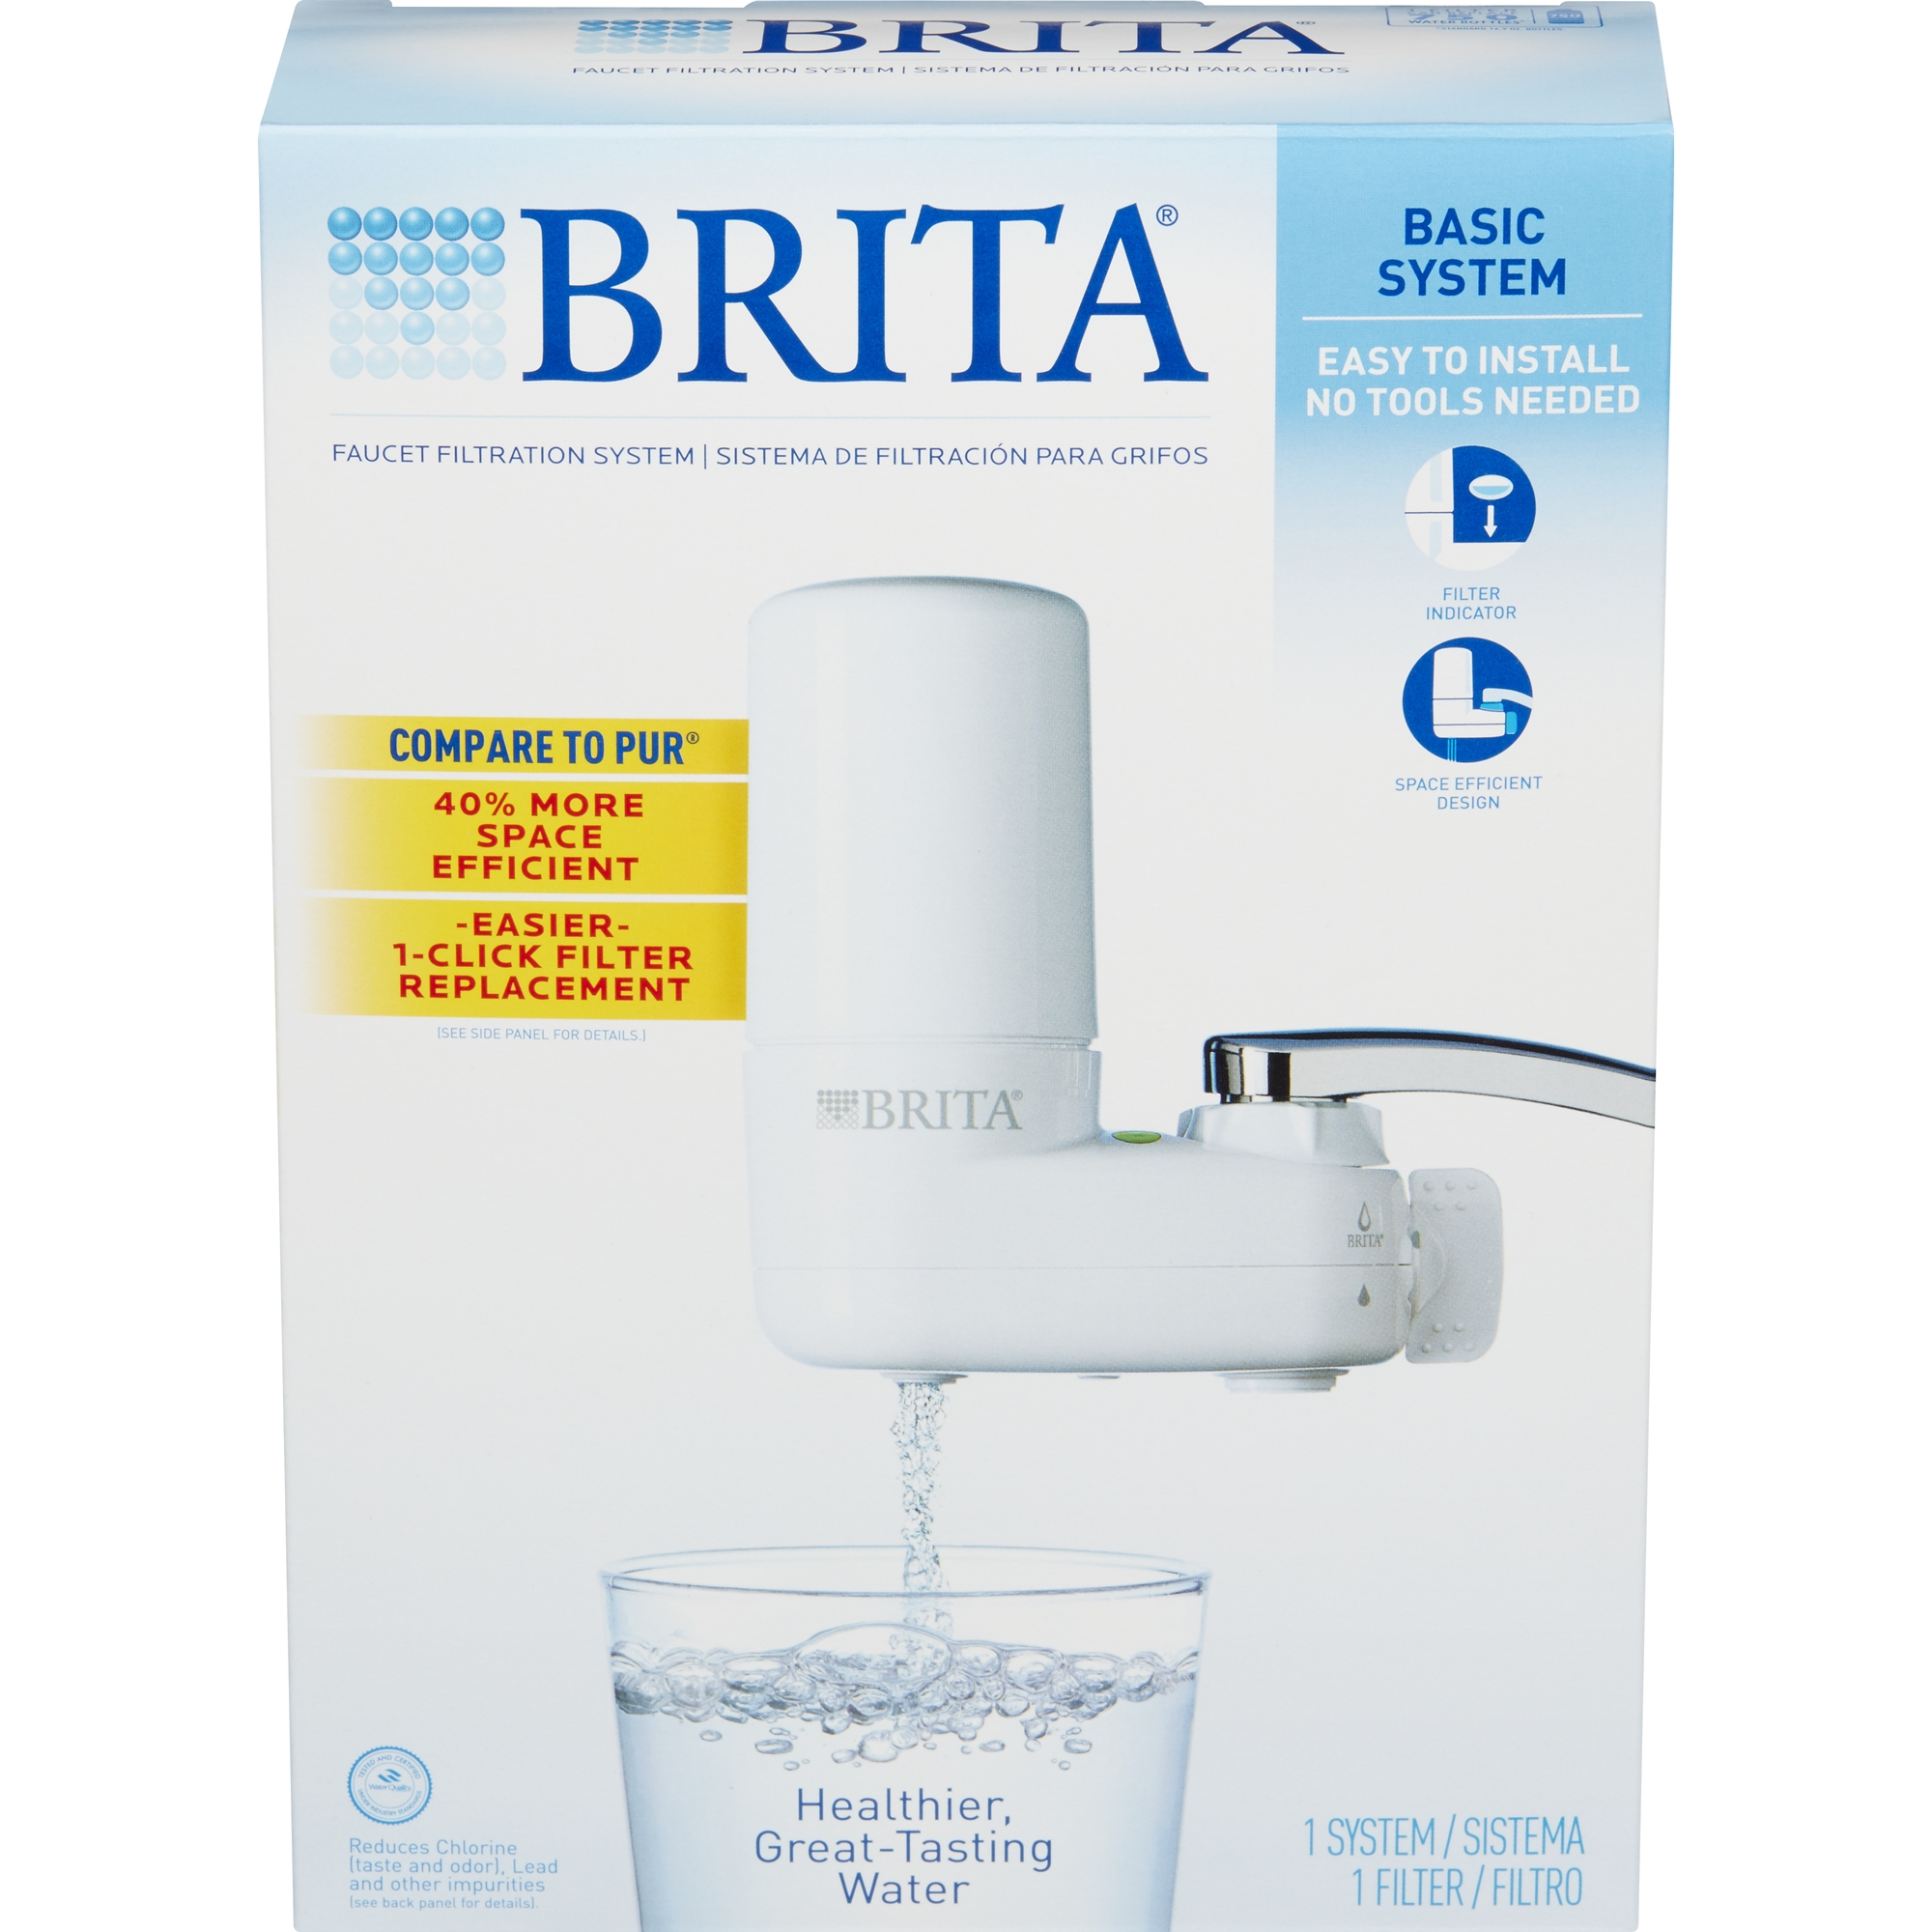 brita basic on tap faucet water filter system fits standard faucets only walmartcom - Water Filter